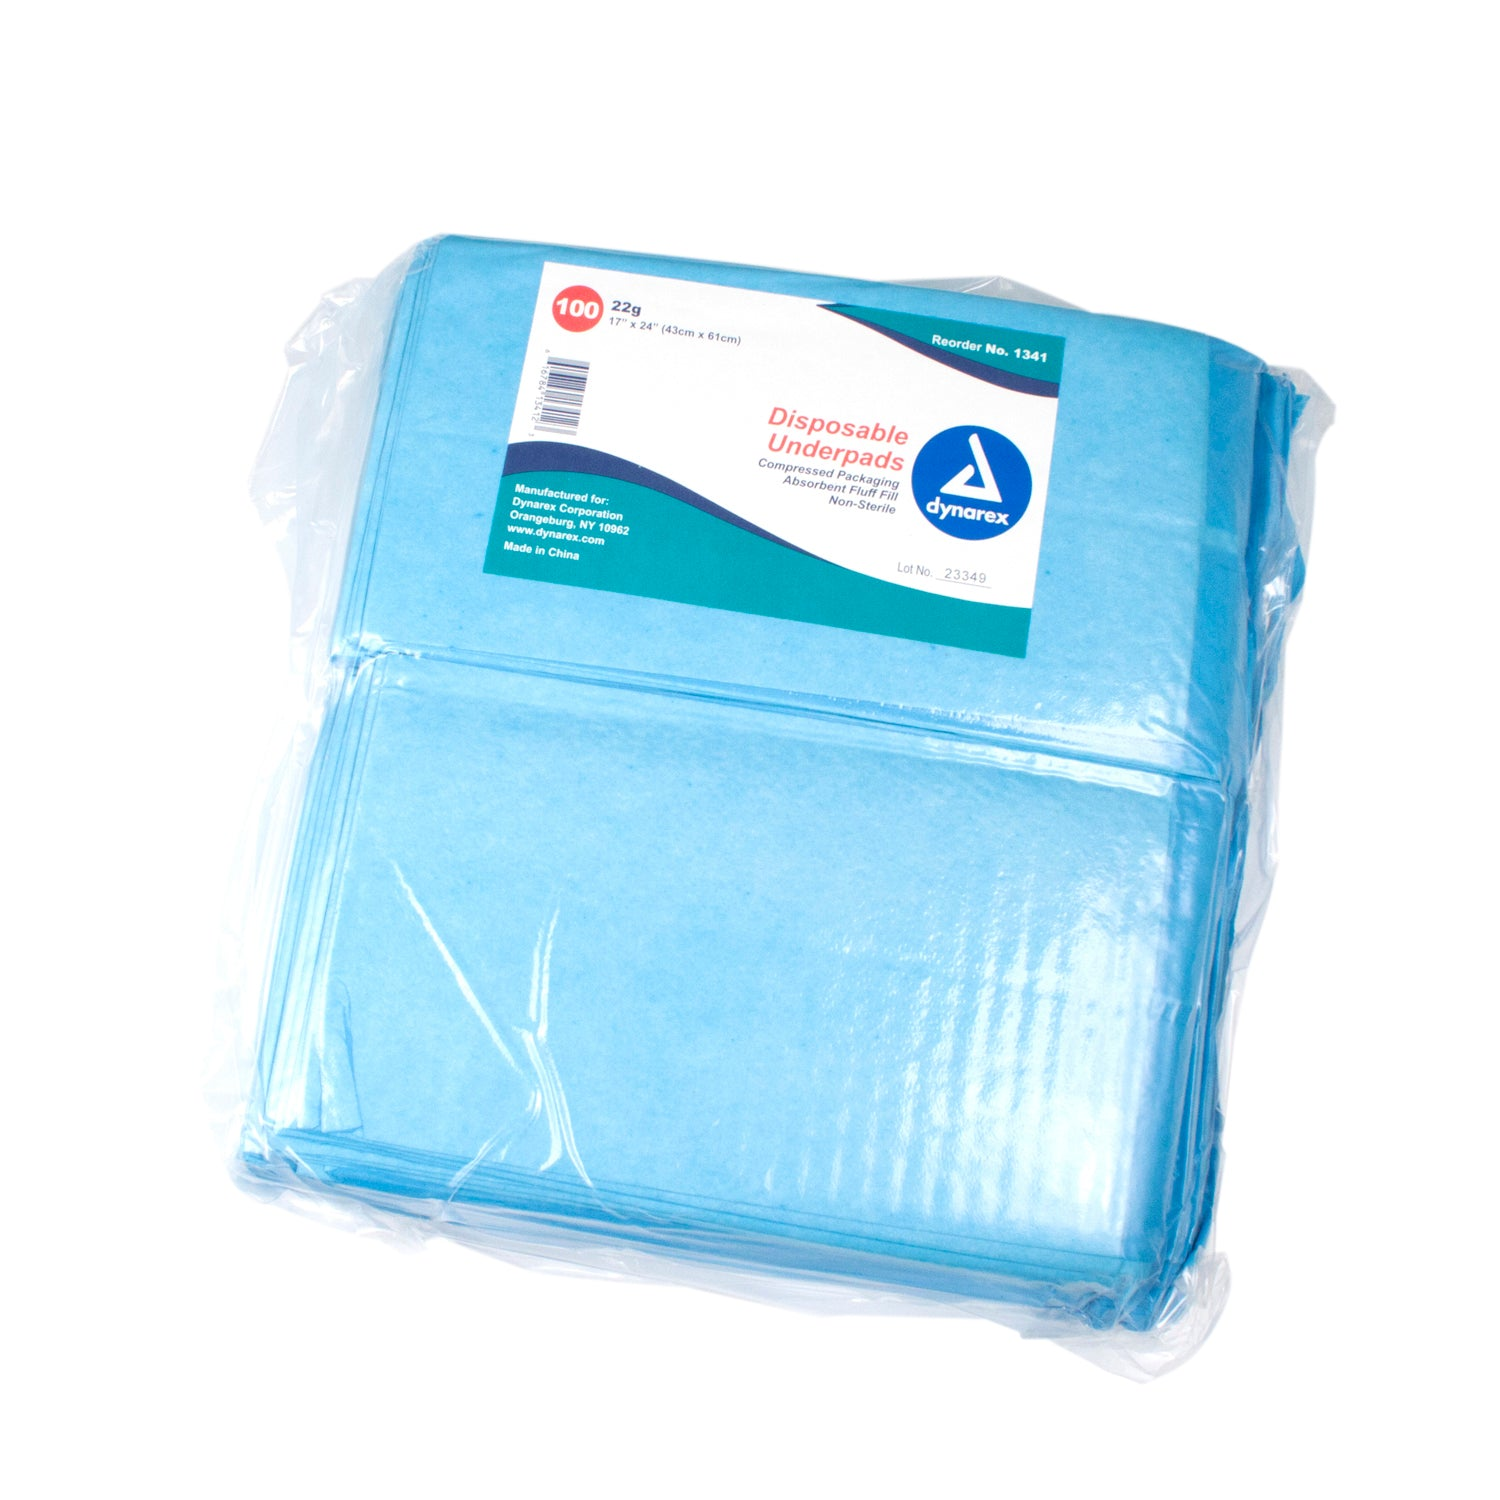 Home Health Page 2 Fhmedicalservices Underpad Sensi Dynarex 1341 Disposable Underpads